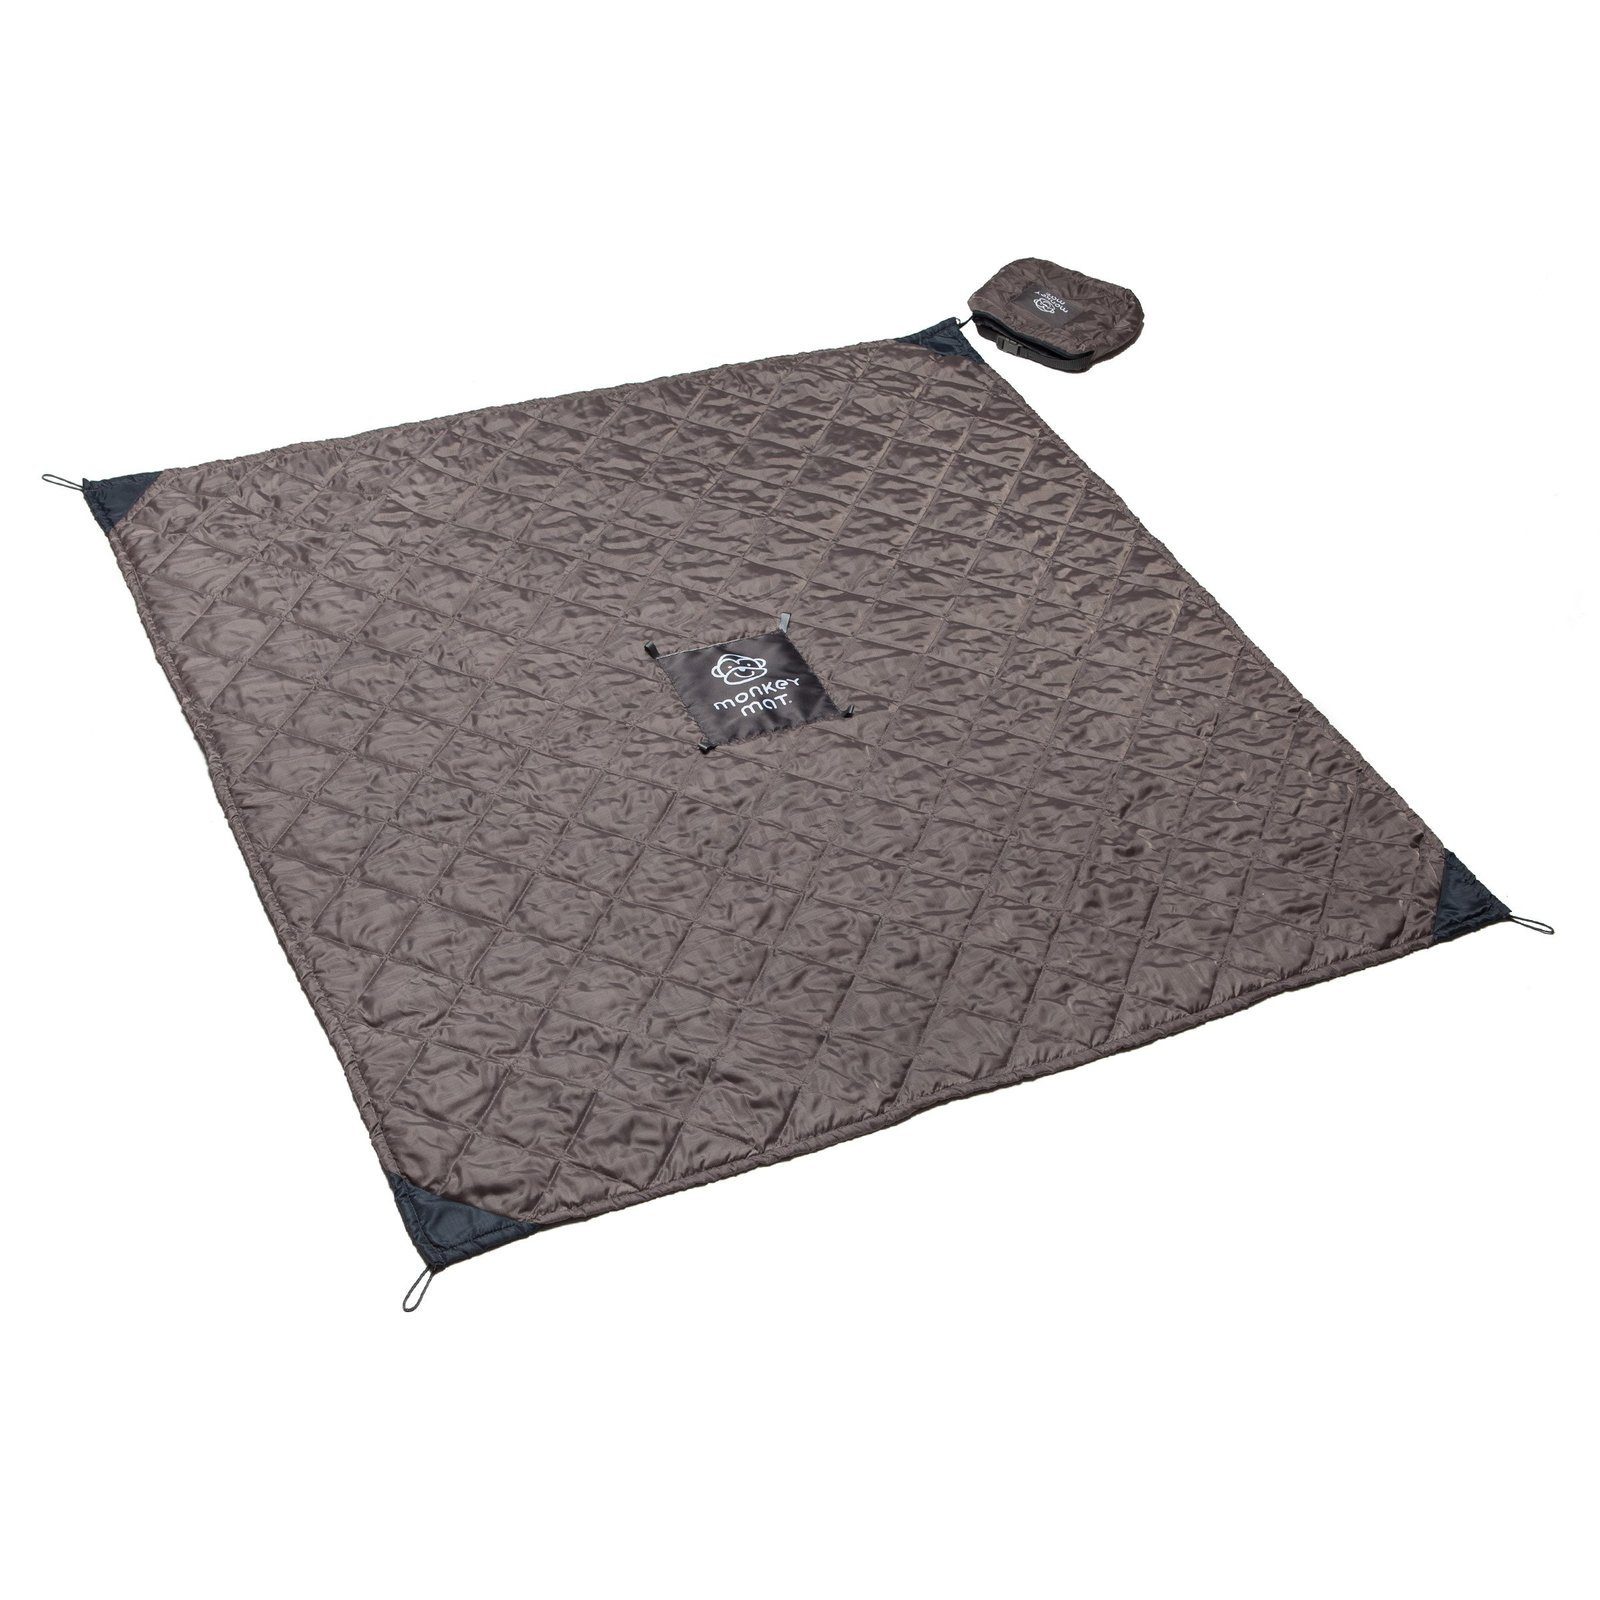 Monkey Mat: Quilted image